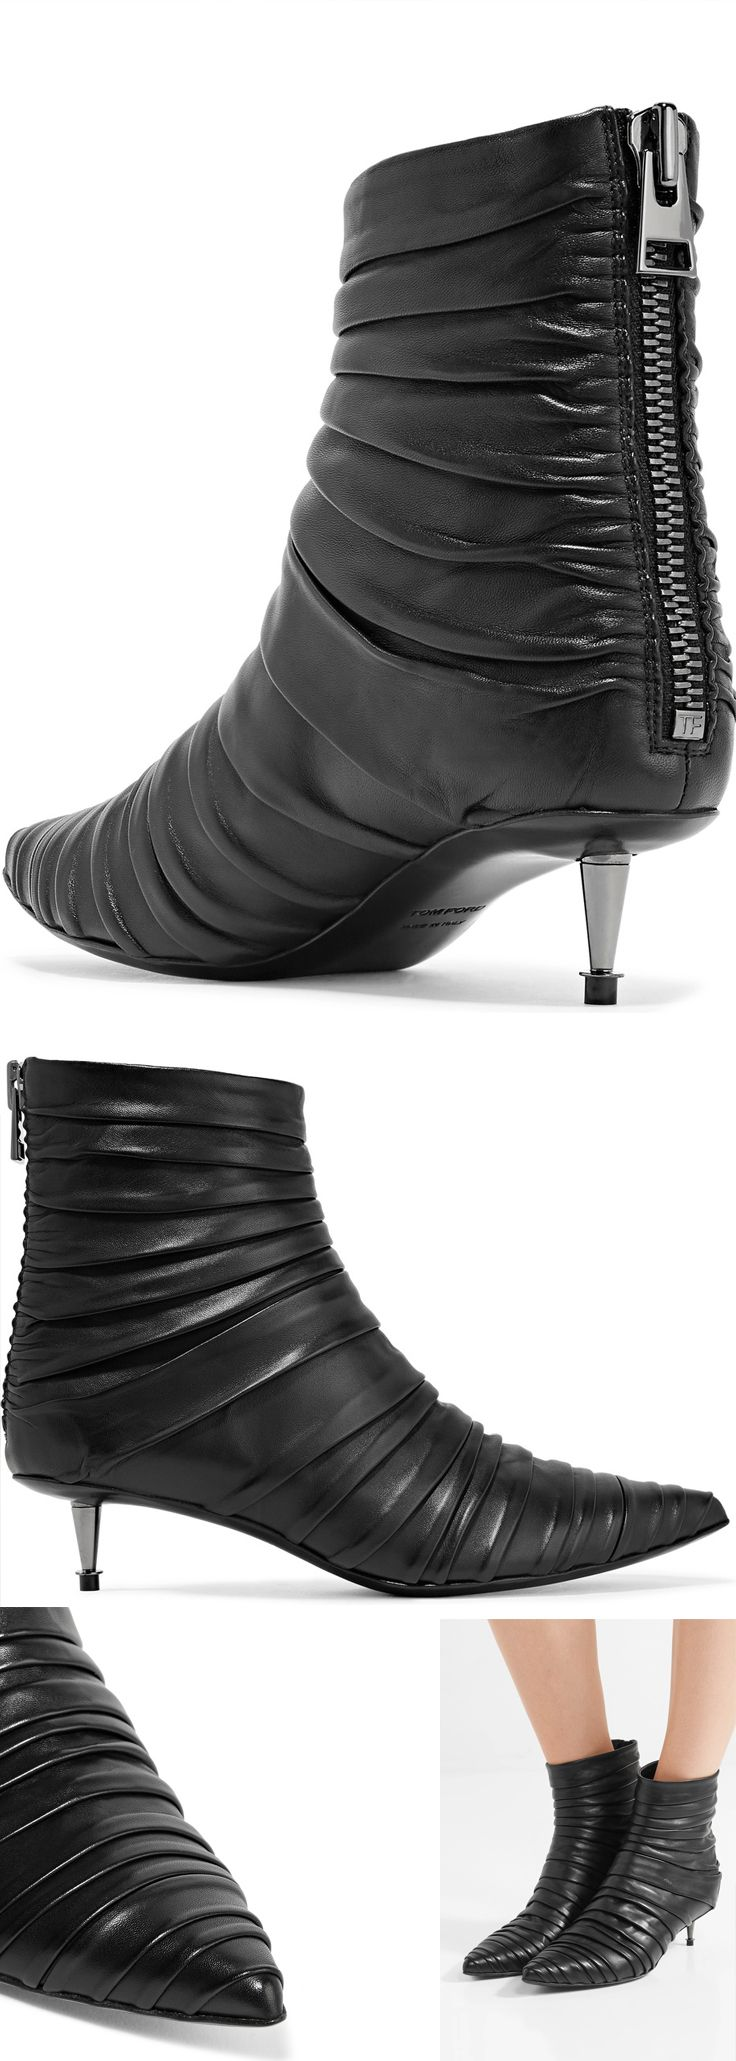 TOM FORD's ankle boots are made from black leather that's so soft and supple it's artfully ruched to create a pleated effect. Made in Italy, this pointed pair is set on a sculptural gunmetal kitten heel. Balance the wider cuffs with cropped jeans or midi hems. #fashion #winter #aw17 #winterfashion #tomford #winterboots #affiliatelink #fashionaddict #fashionista #christmas #presents